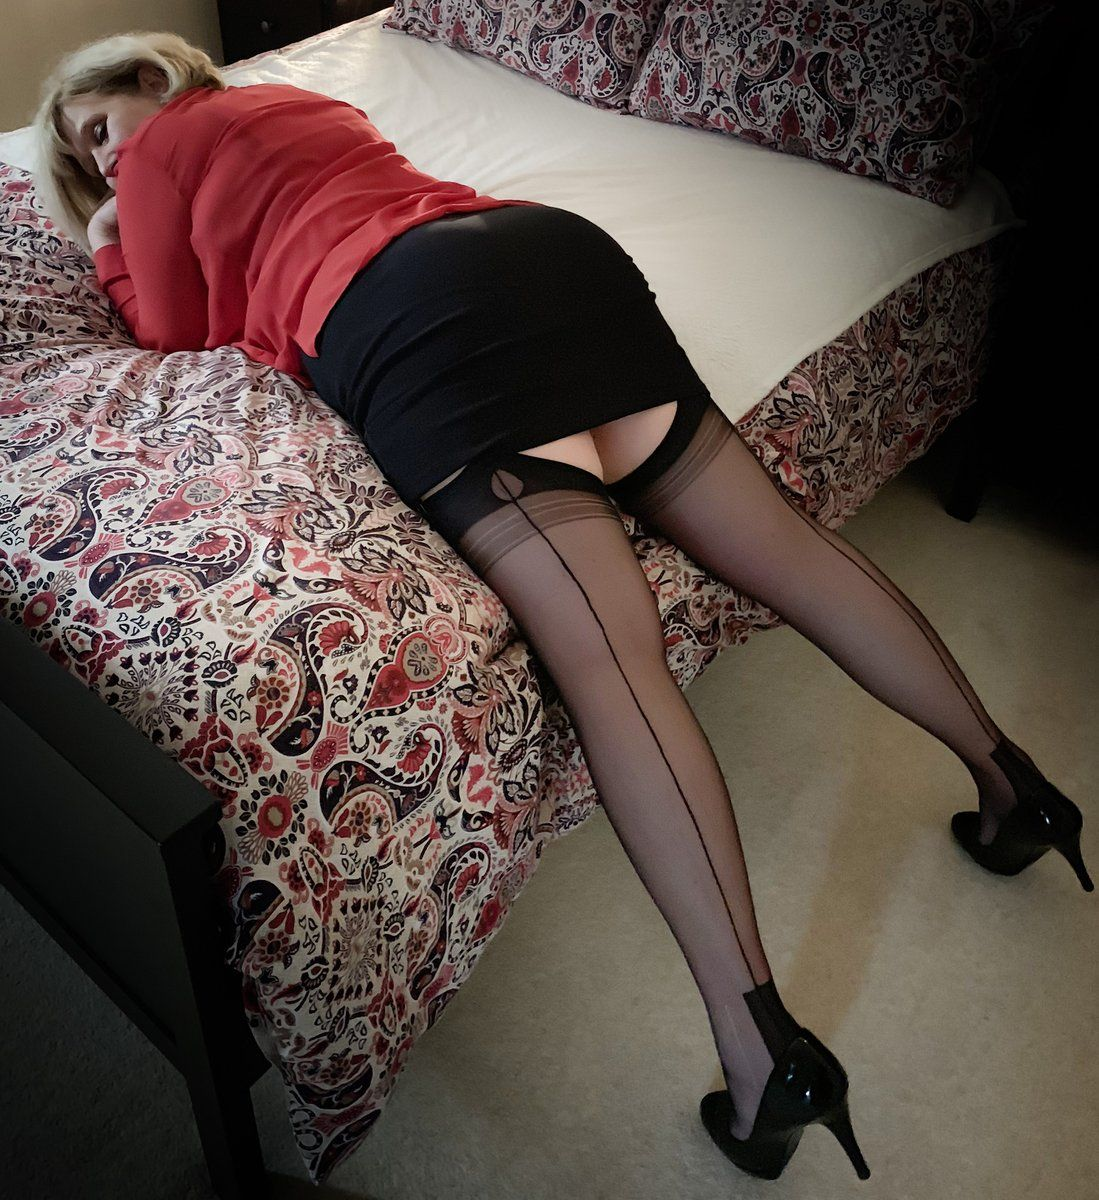 High Heels Stockings Creampie